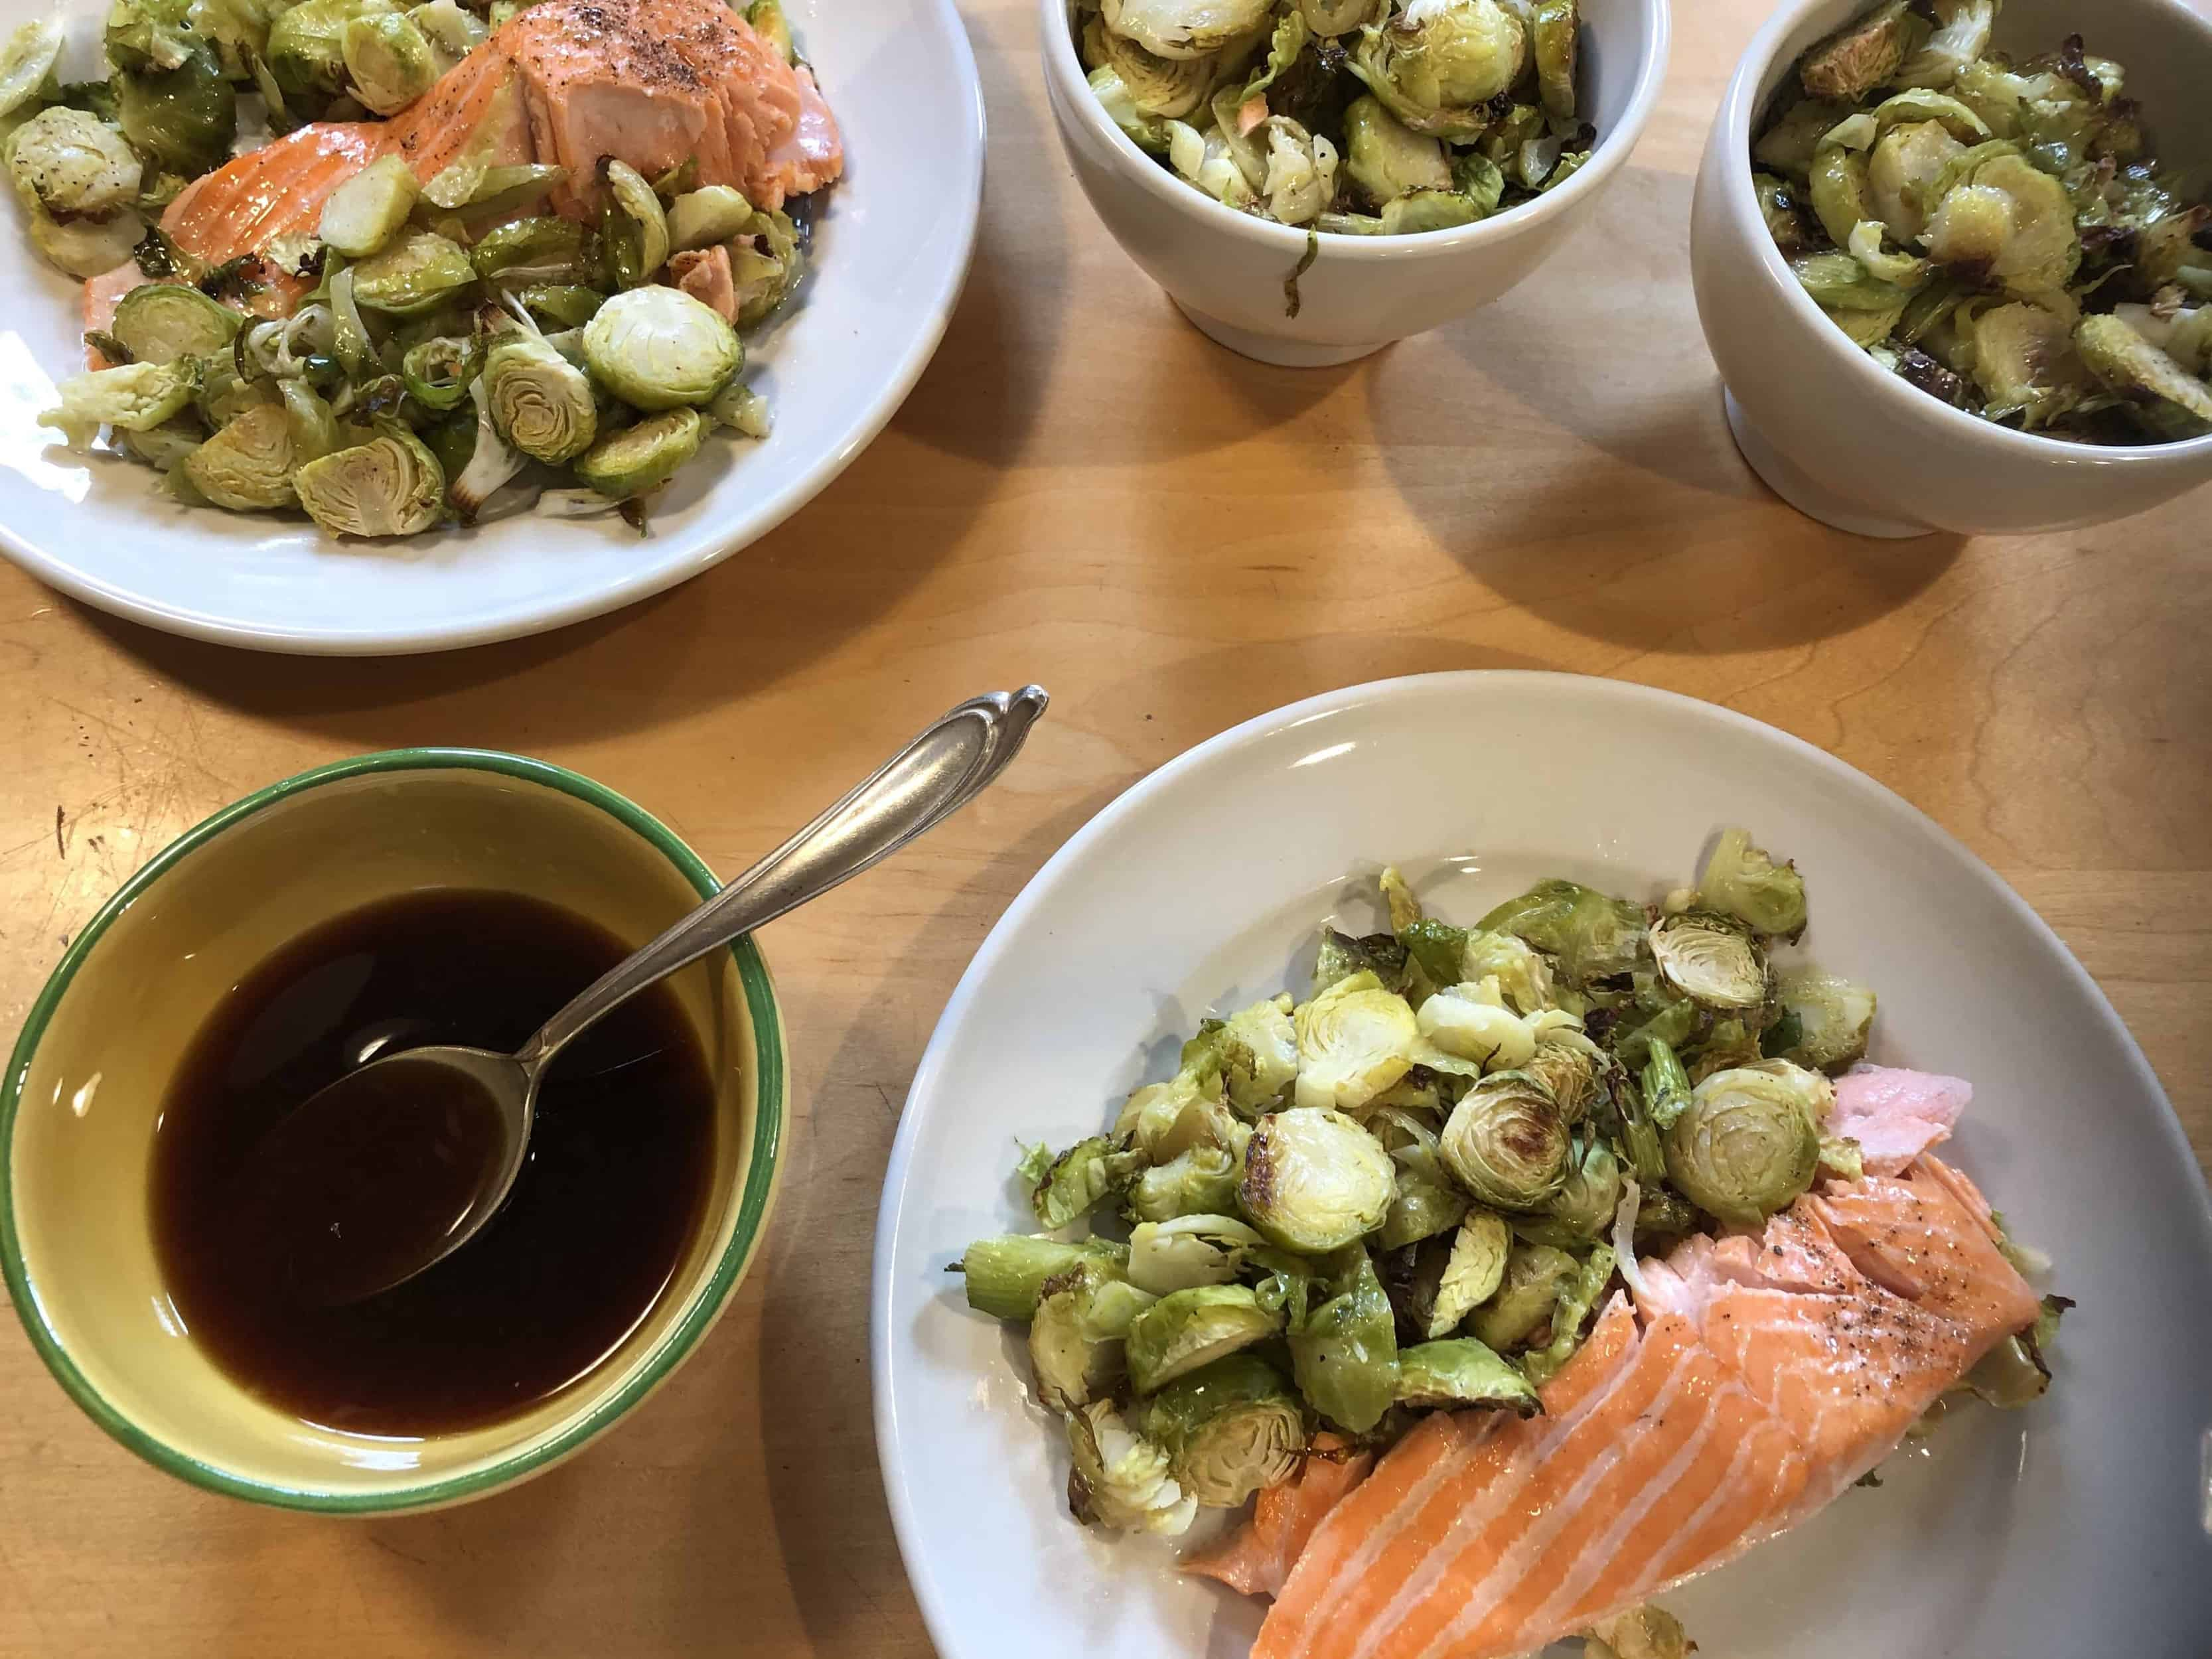 Healthy and quick, sheet-pan salmon and brussels sprouts with citrus-soy sauce.